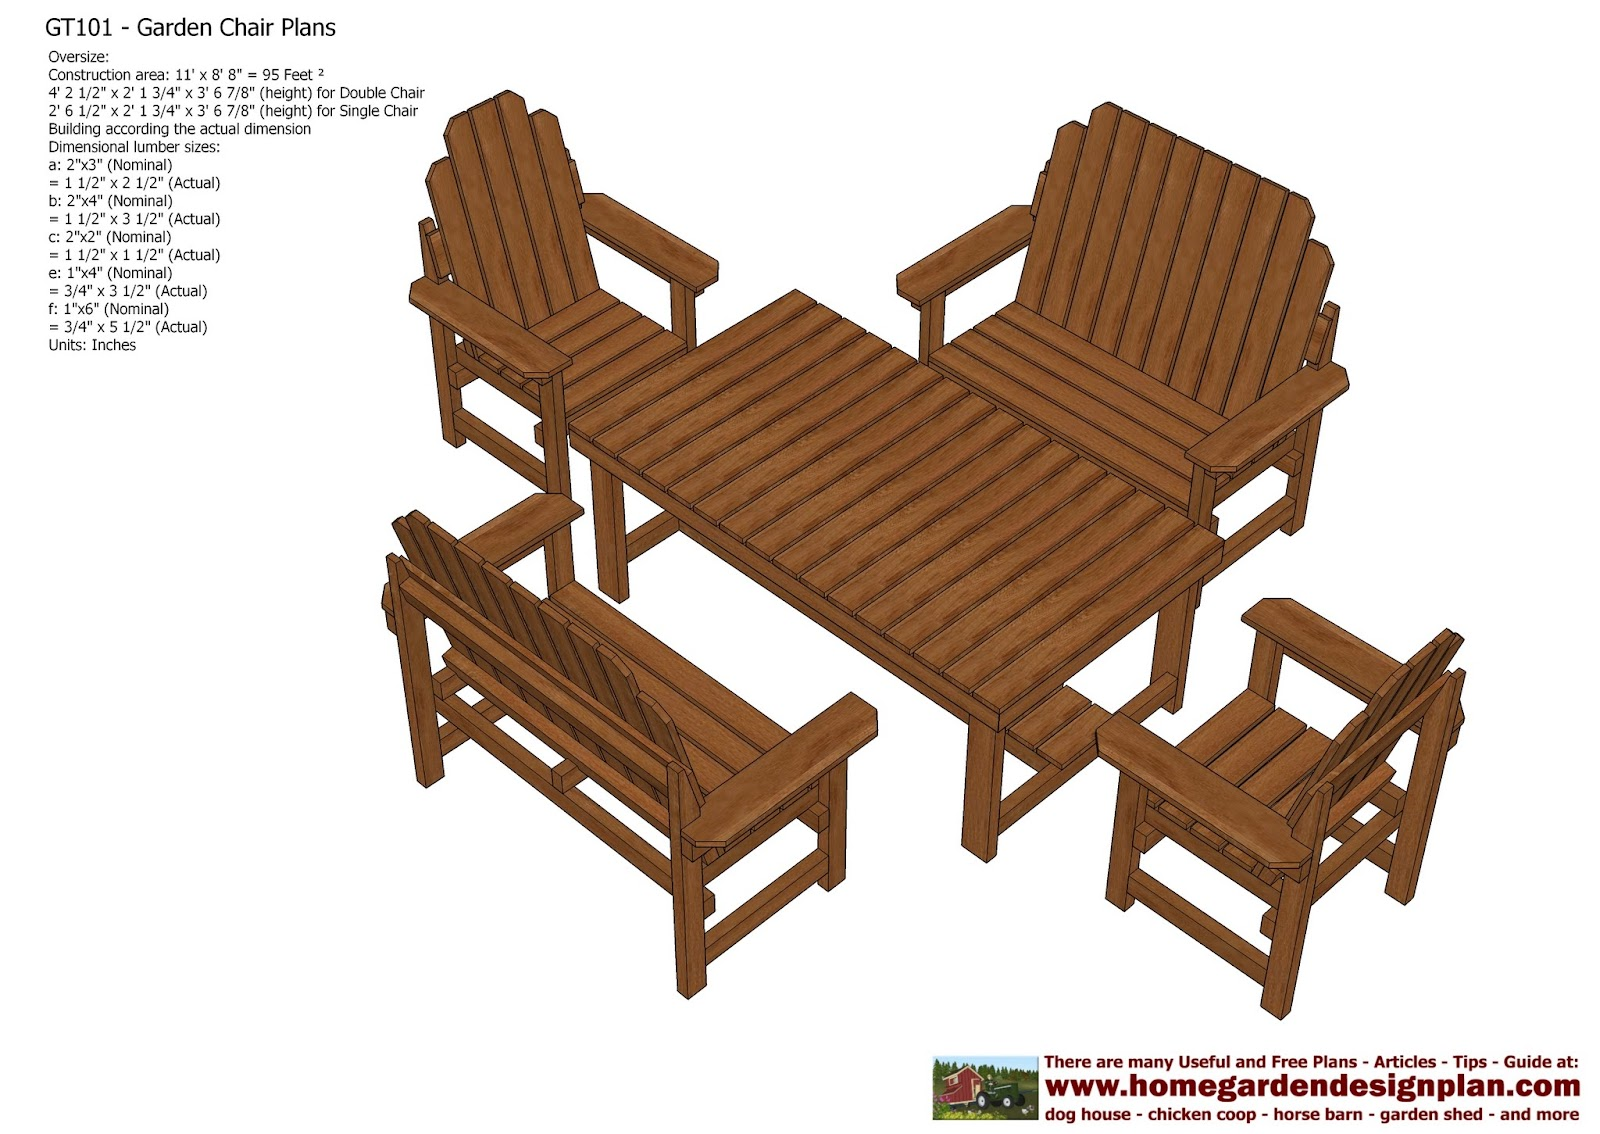 Chair Design Garden Leather Swivel John Lewis Free Furniture Woodworking Plans Workbench How To